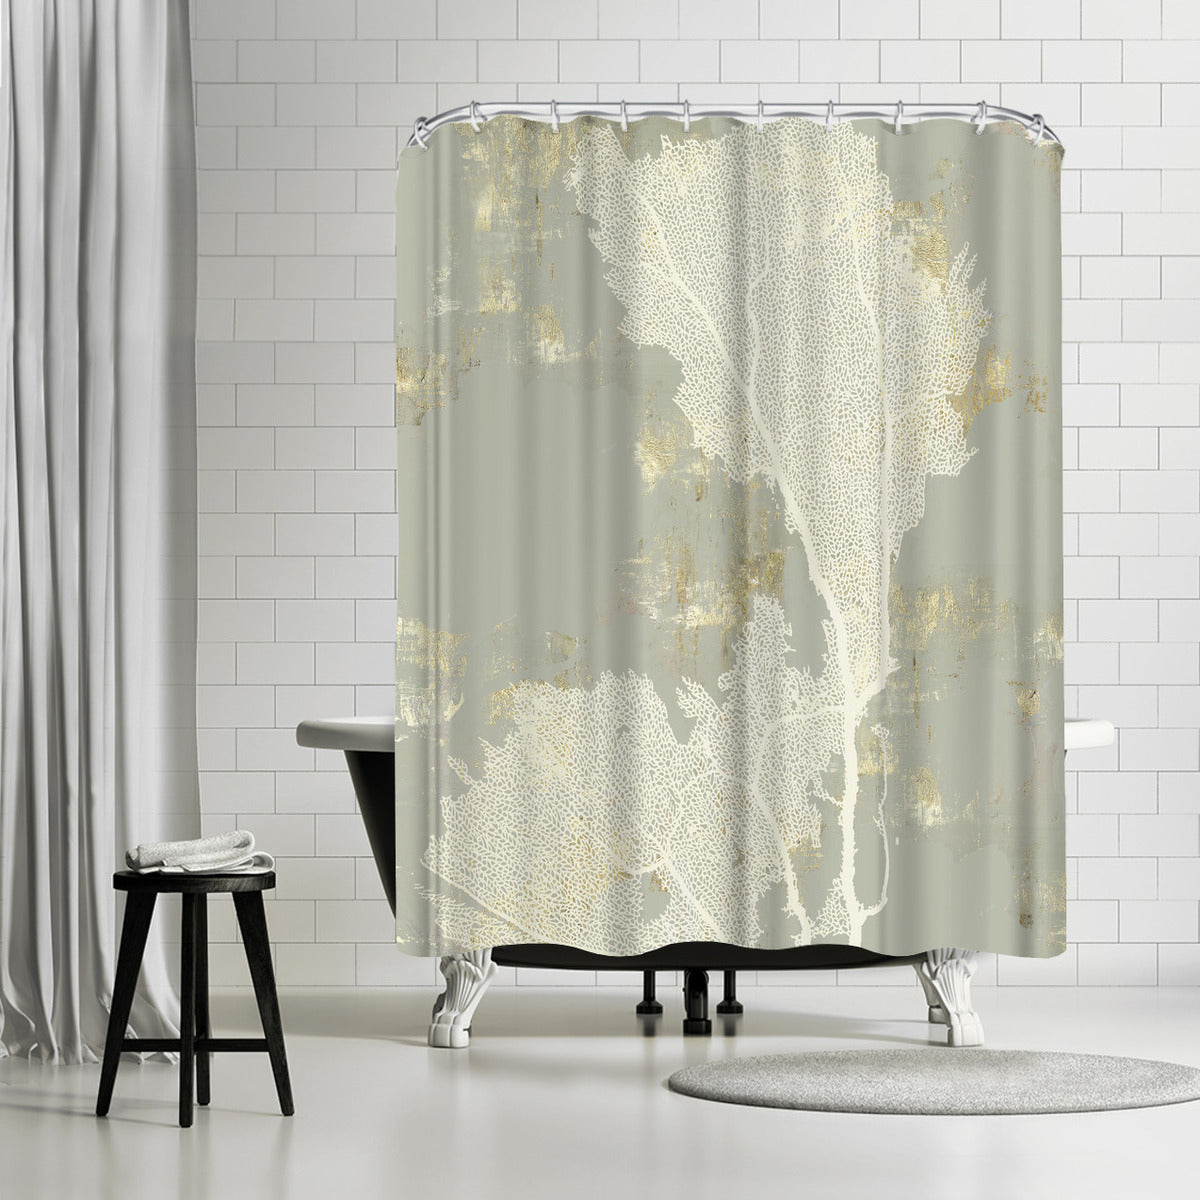 Sea Coral Ii by PI Creative Art Shower Curtain - Shower Curtain - Americanflat